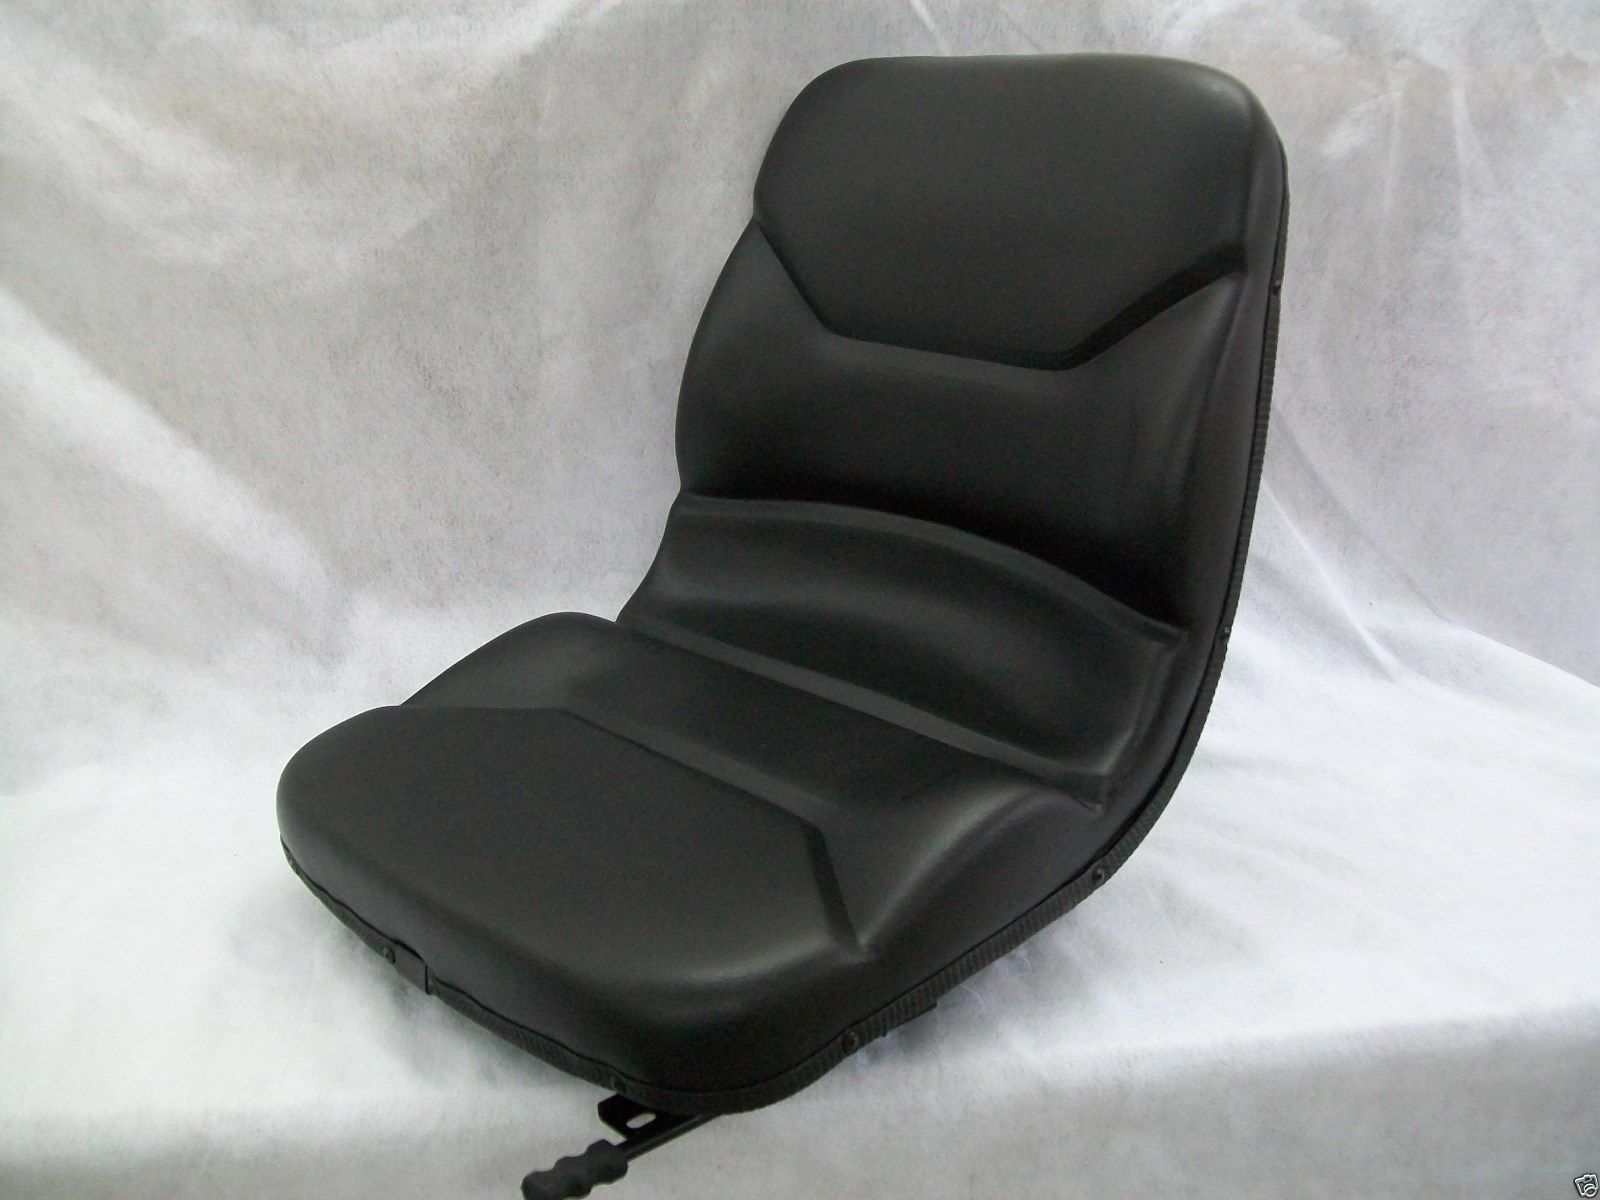 New Black HIGH BACK SEAT w// Slide Track Kit for Case Garden Tractor Made in USA